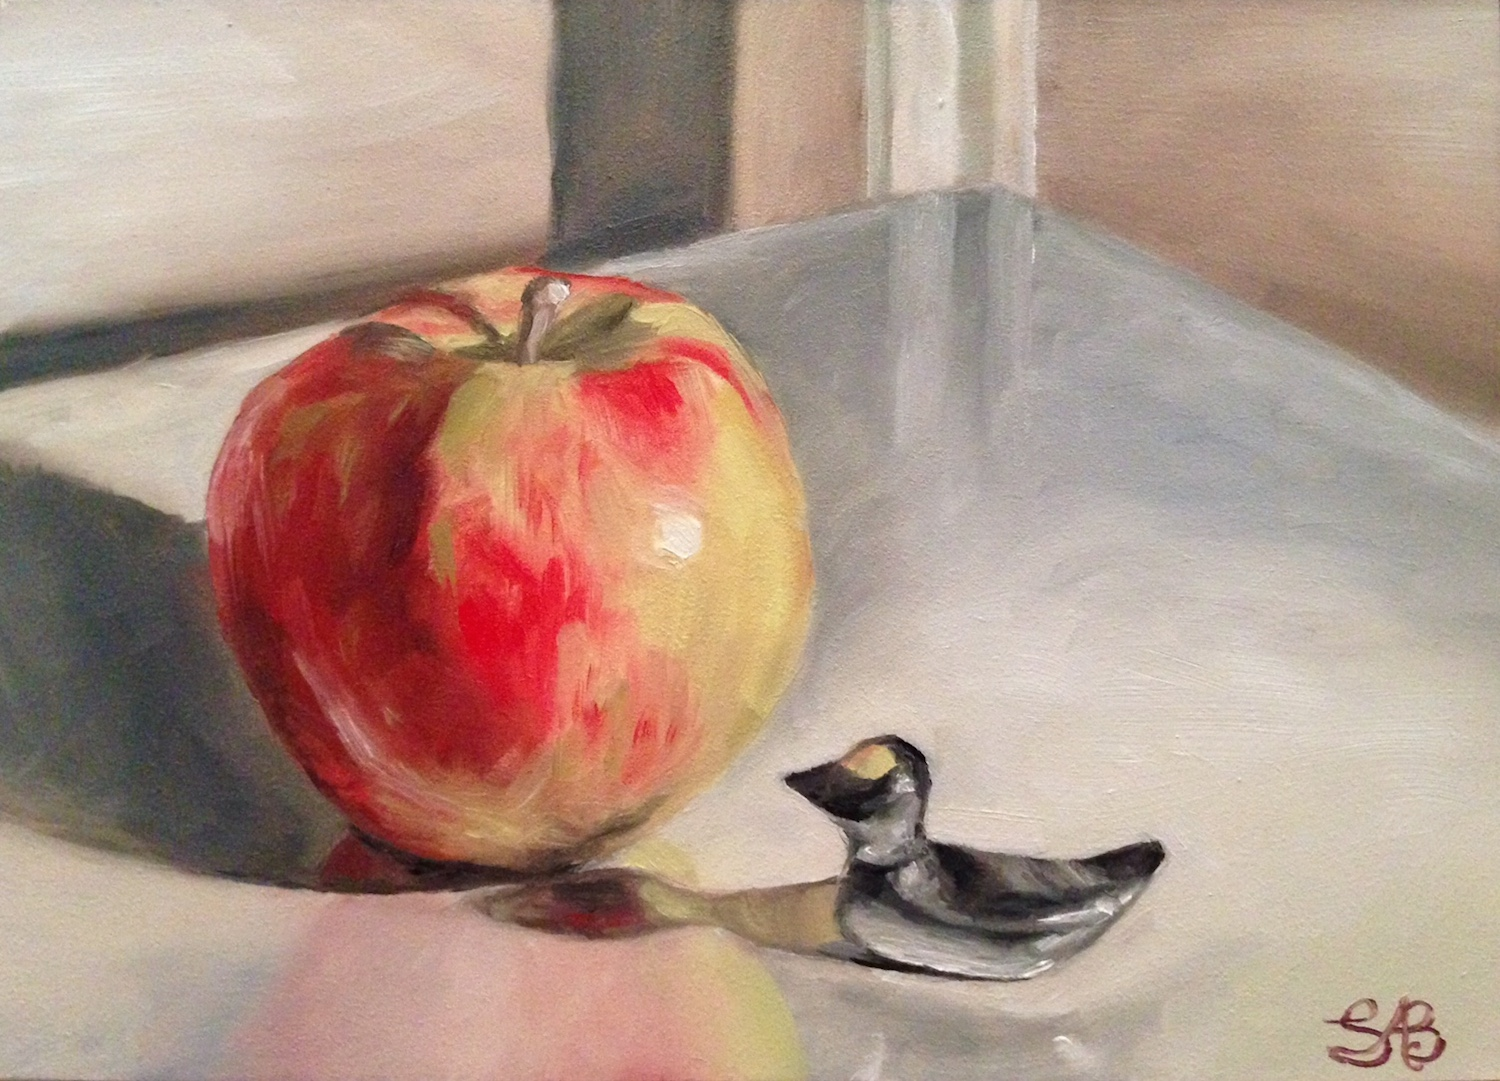 The big apple and the little duck